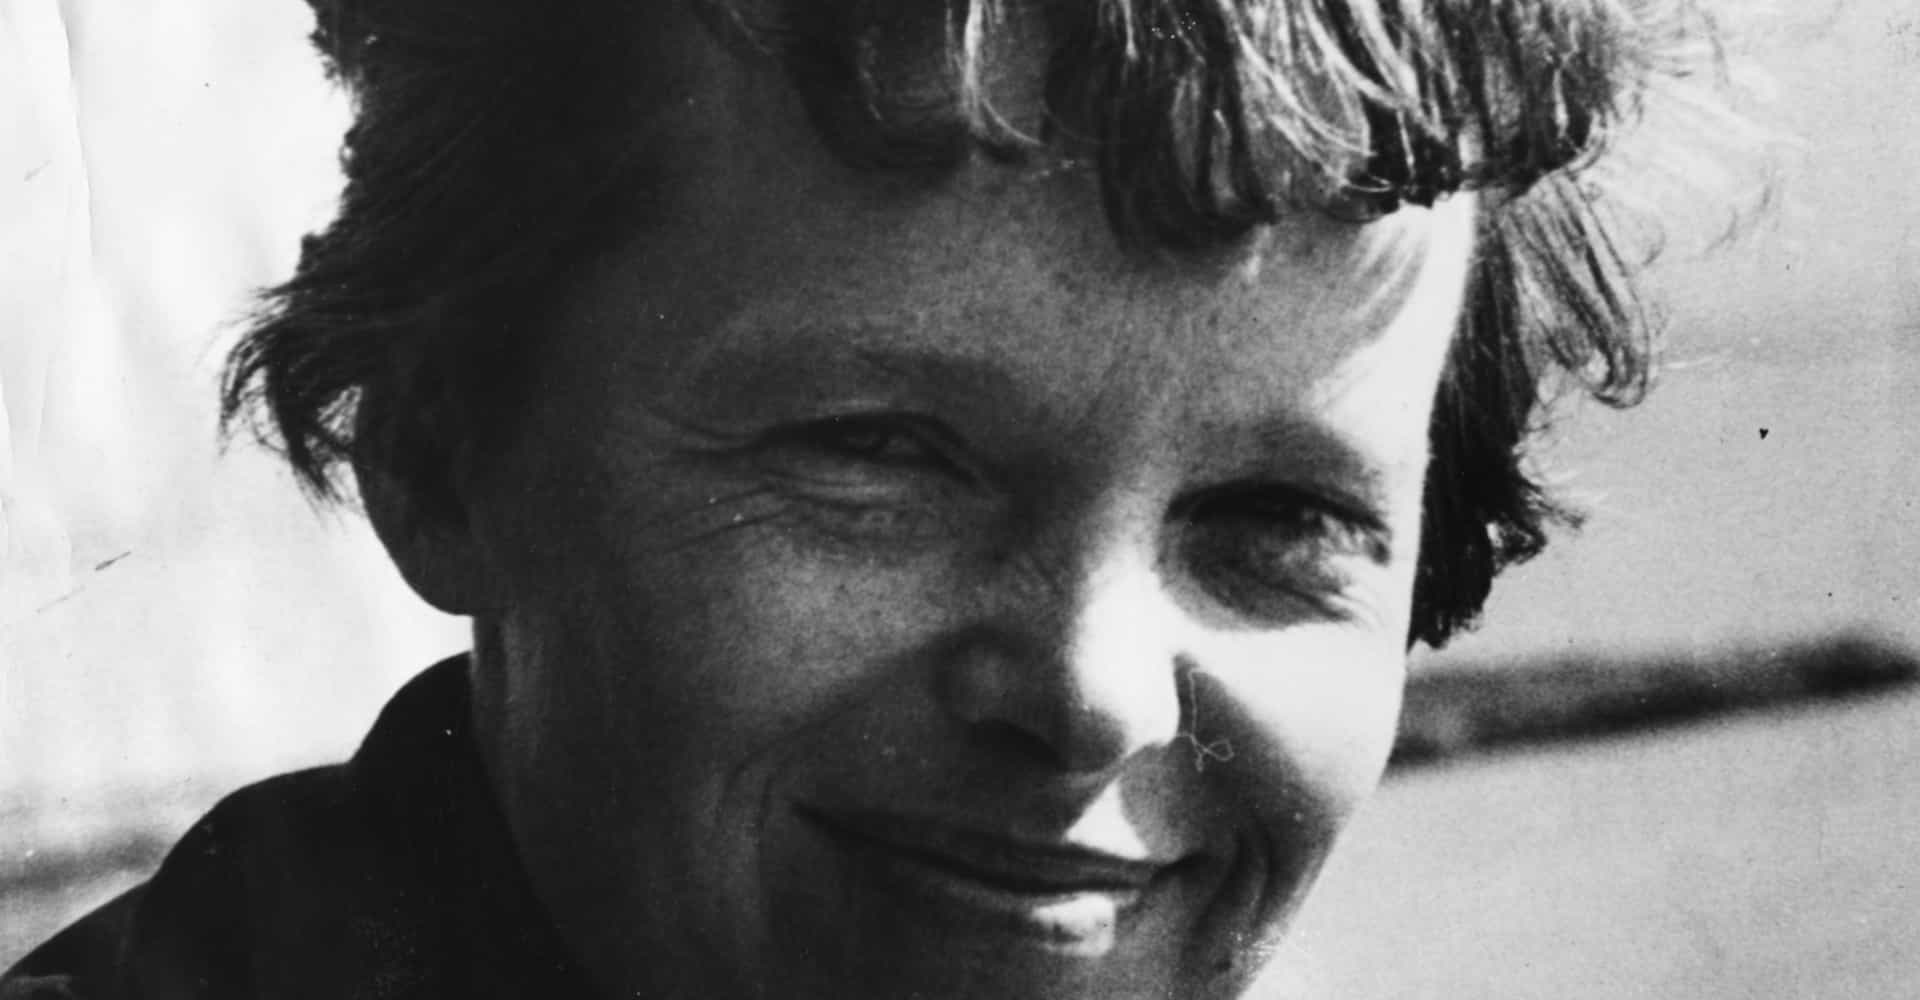 Mystery solved? A look at Amelia Earhart's life and disappearance